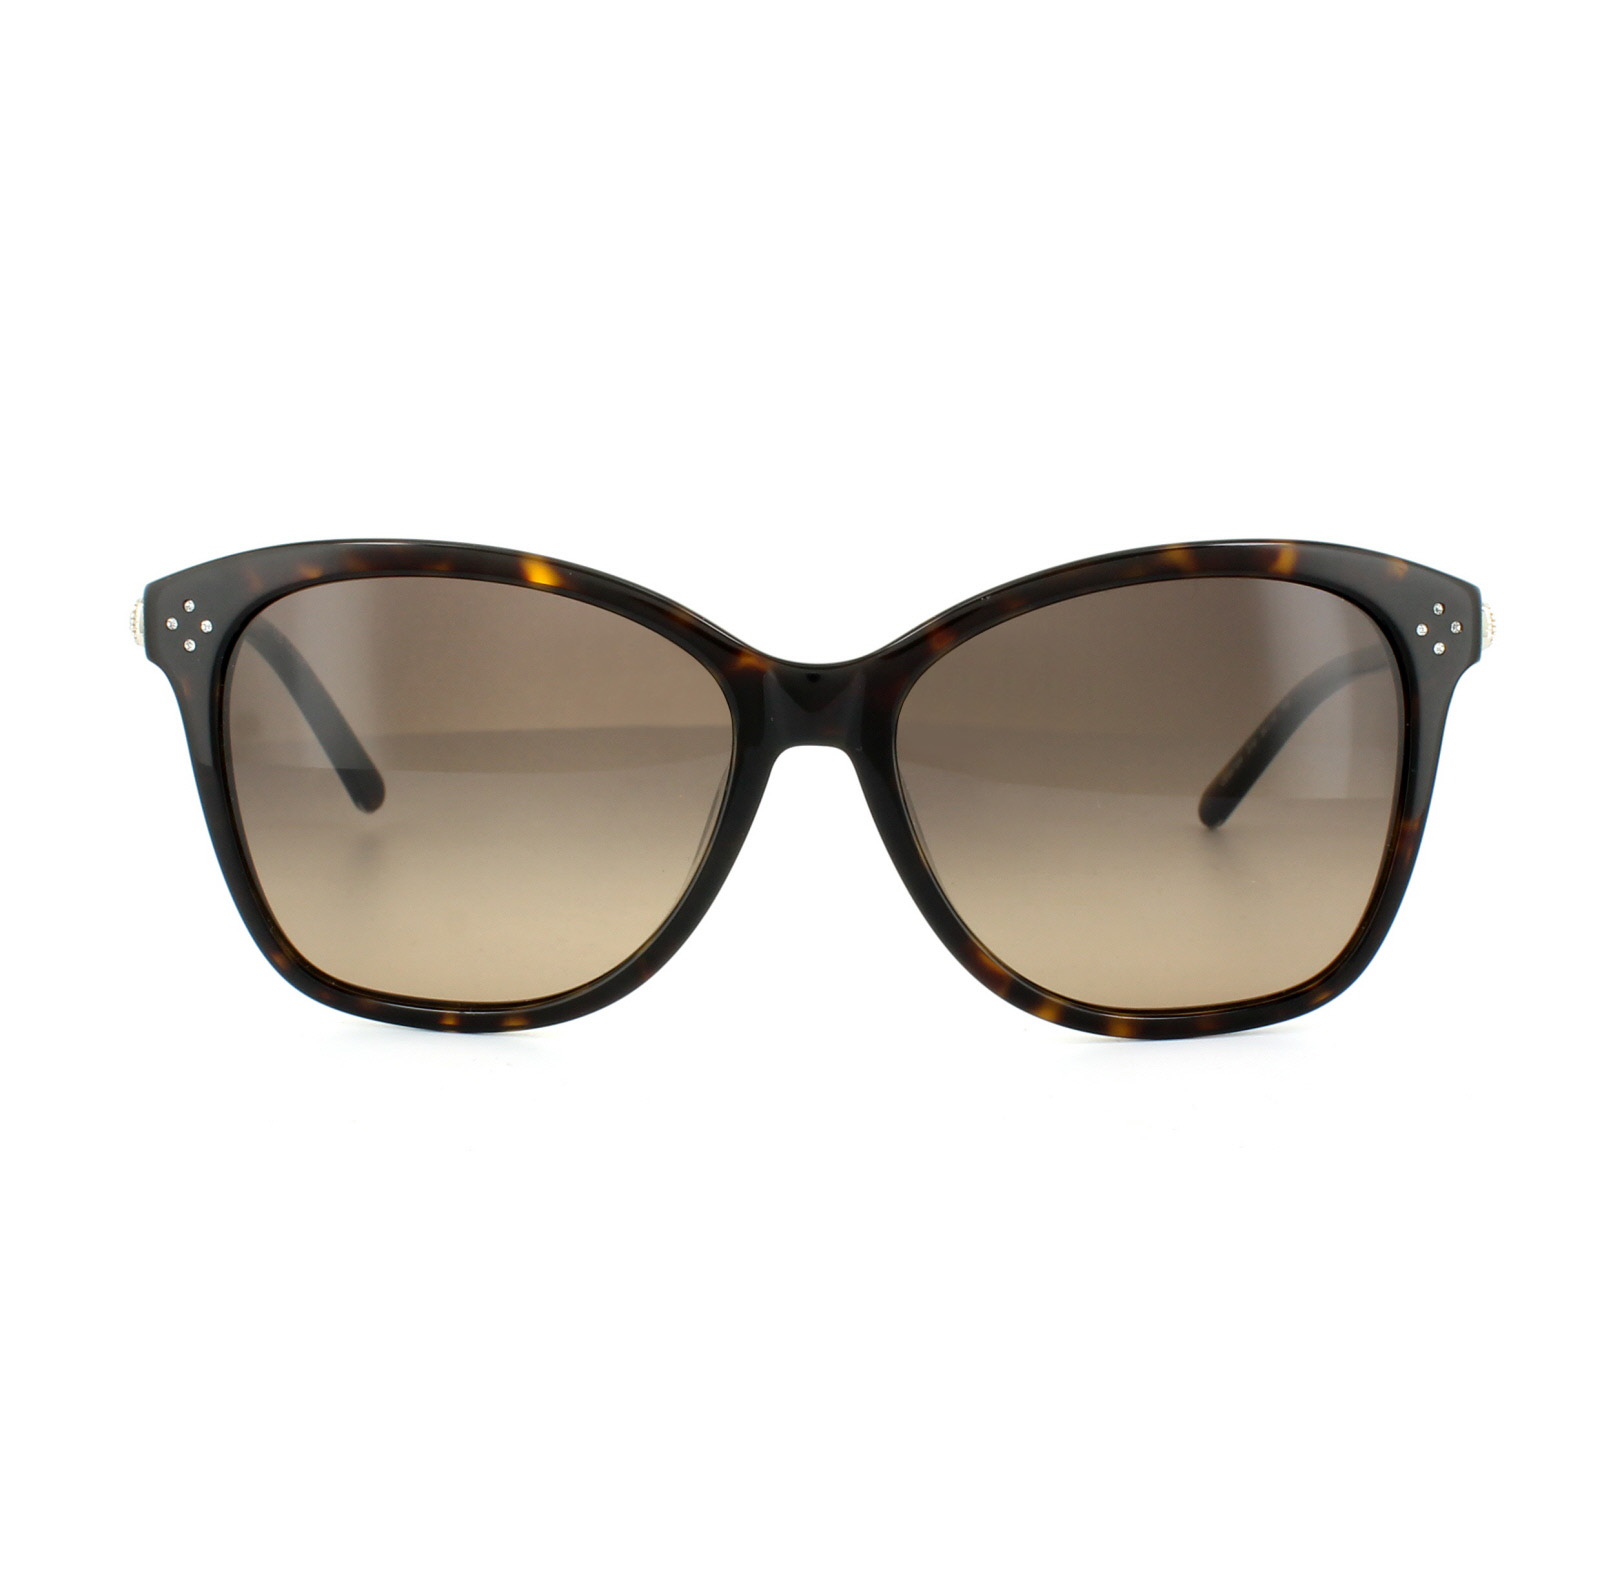 Get inspired by the beauty of the Chloe™ Myrte sunglasses Amazon's Choice for